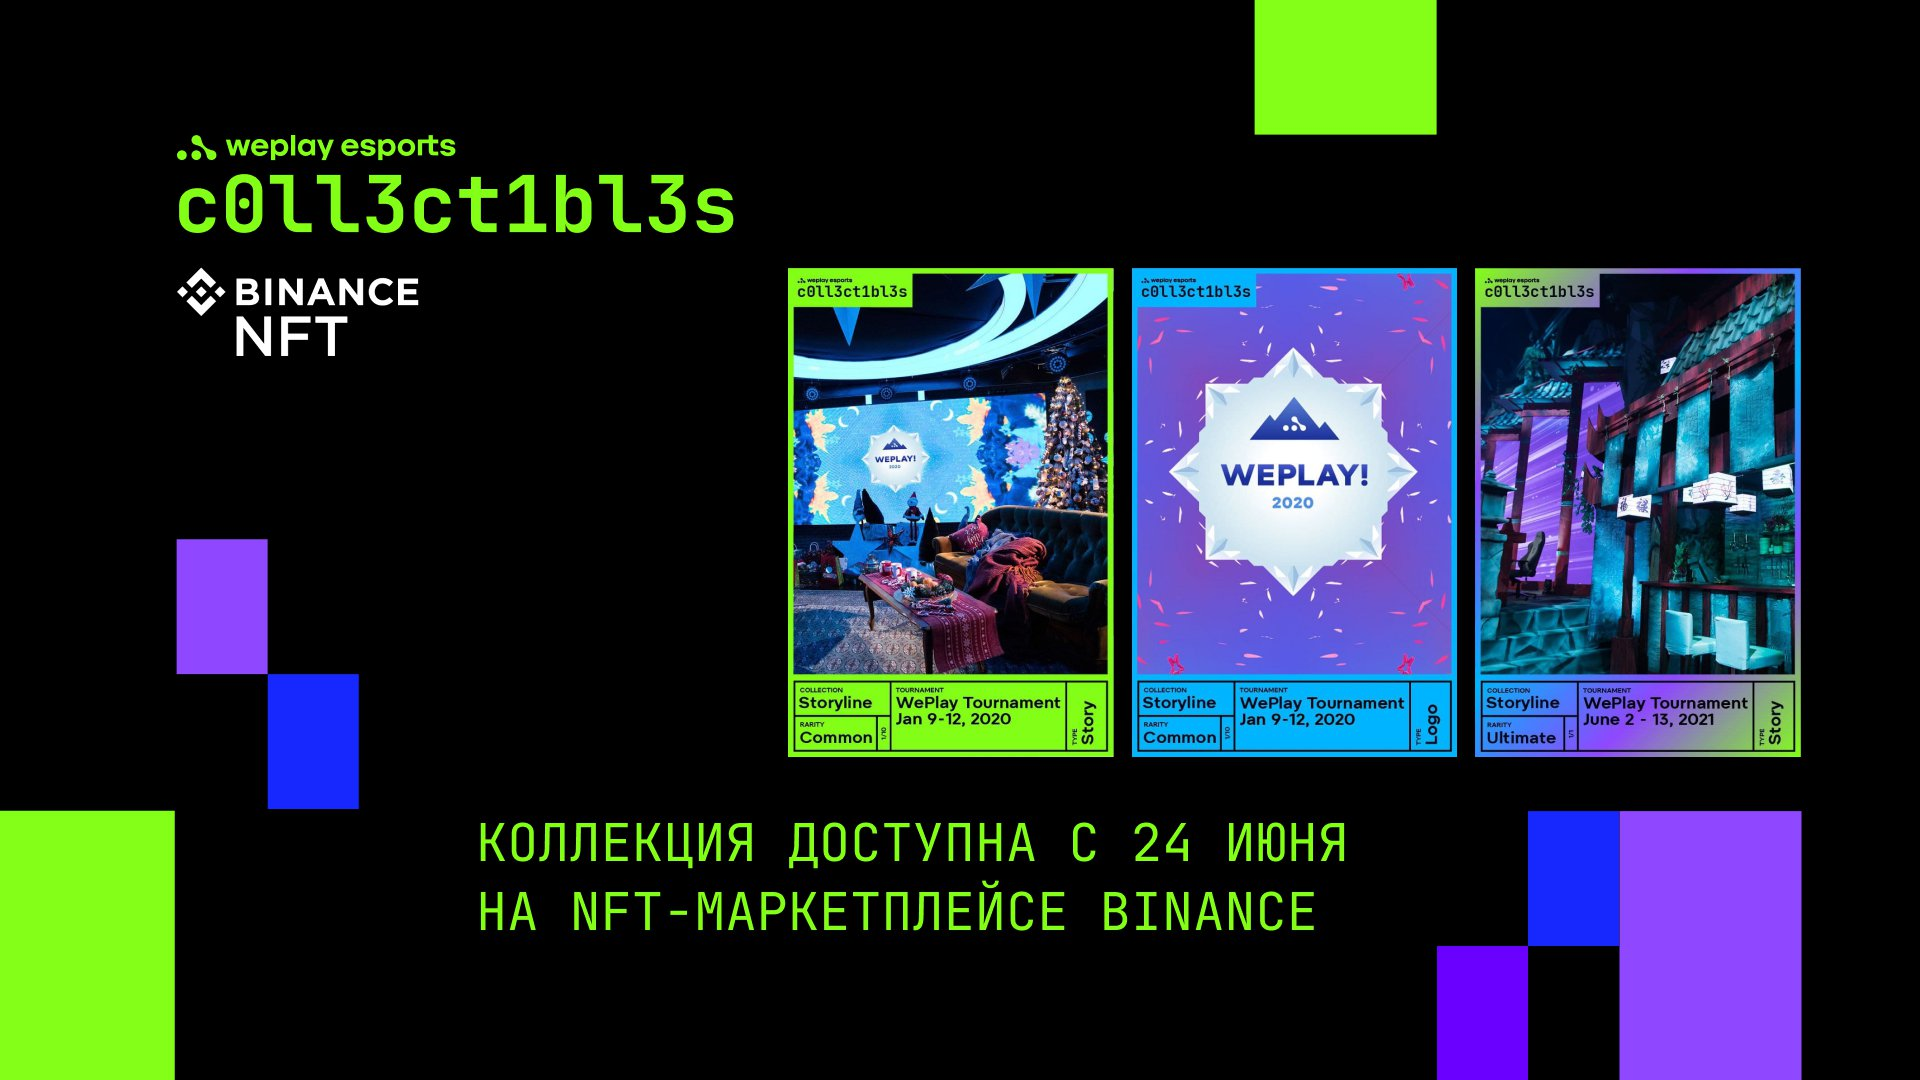 WePlay Collectibles: Привет, мир! Изображение: WePlay Holding